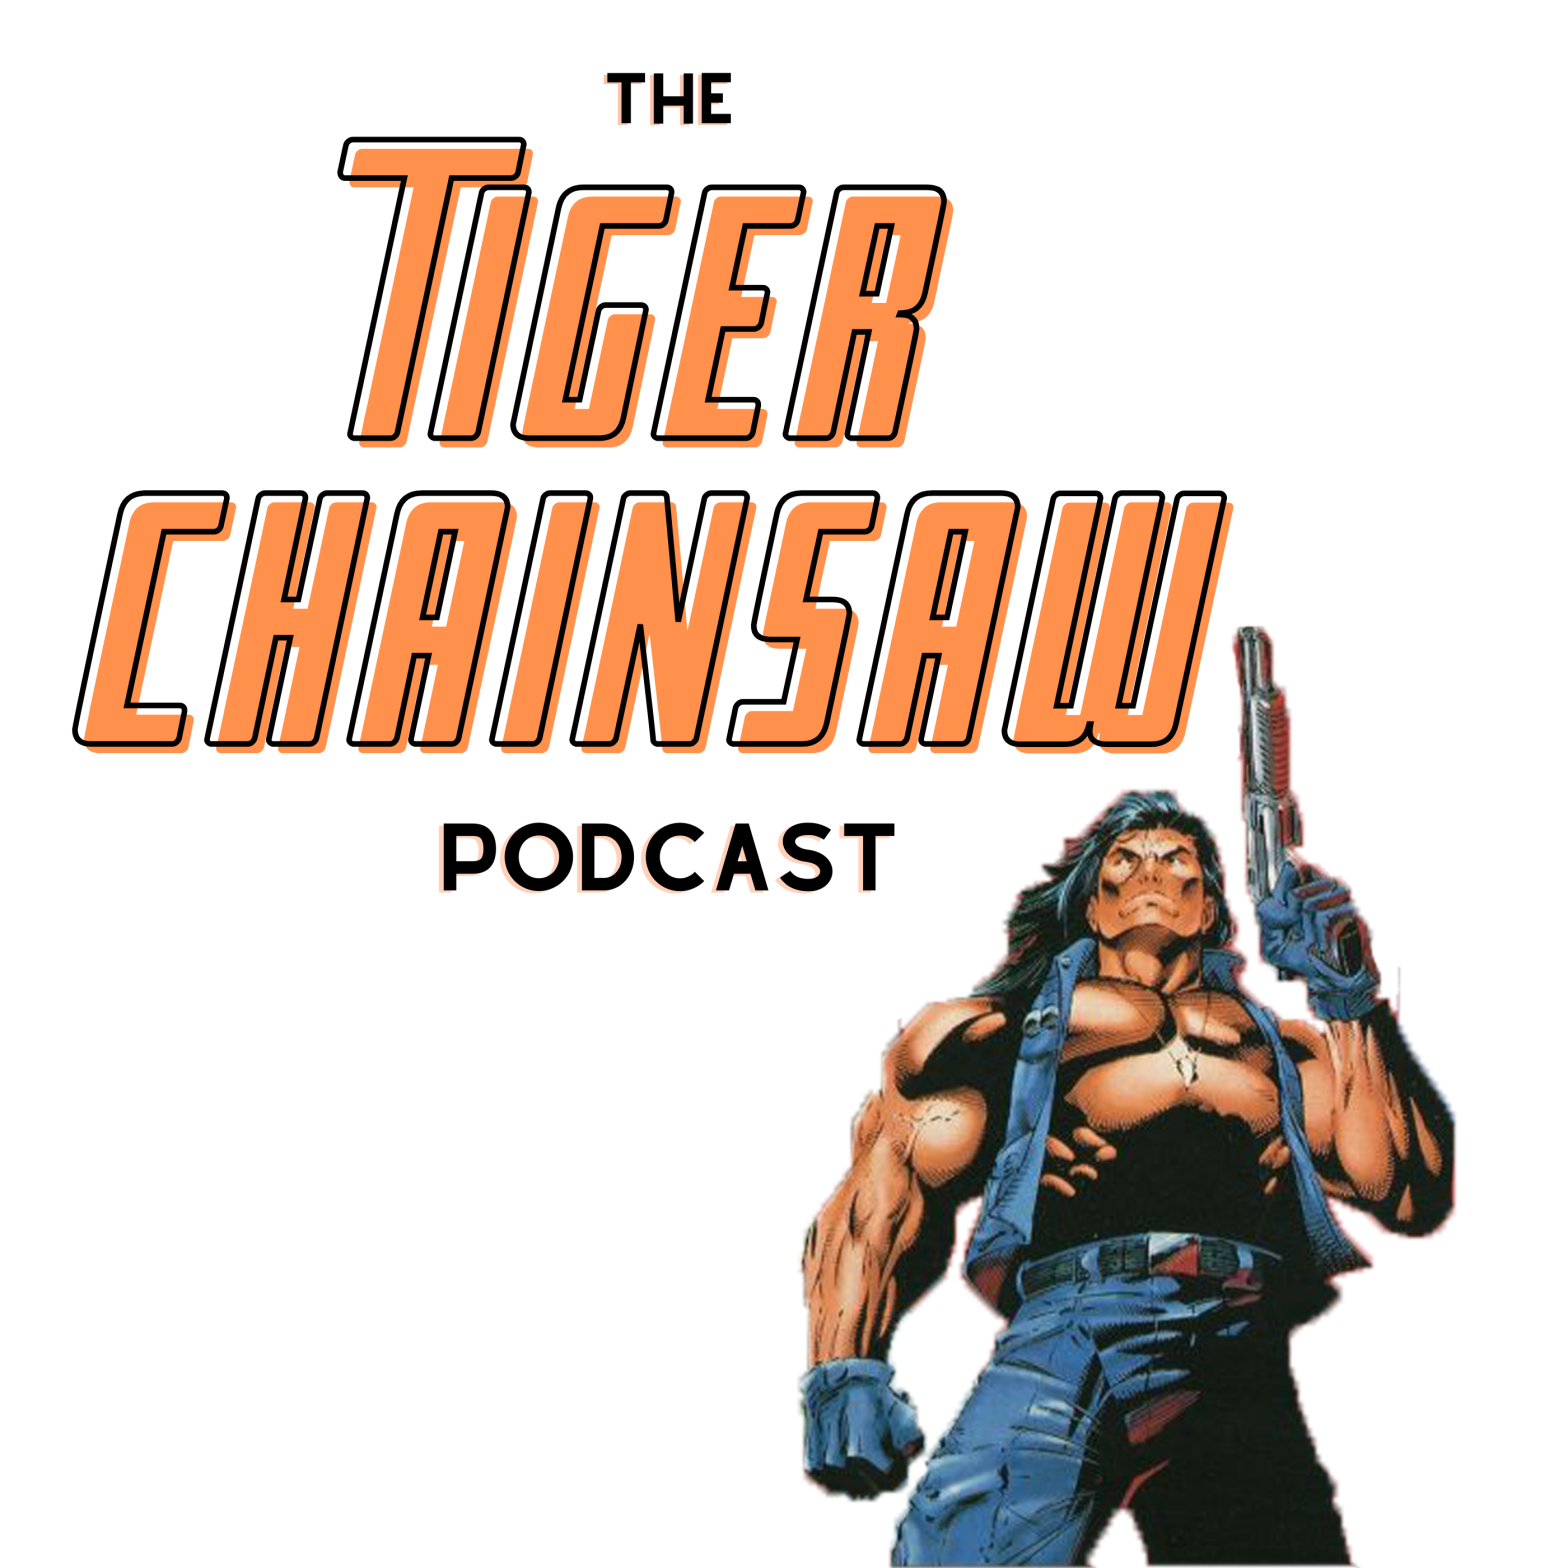 The Tiger Chainsaw Podcast Ep 3 Blackthorne